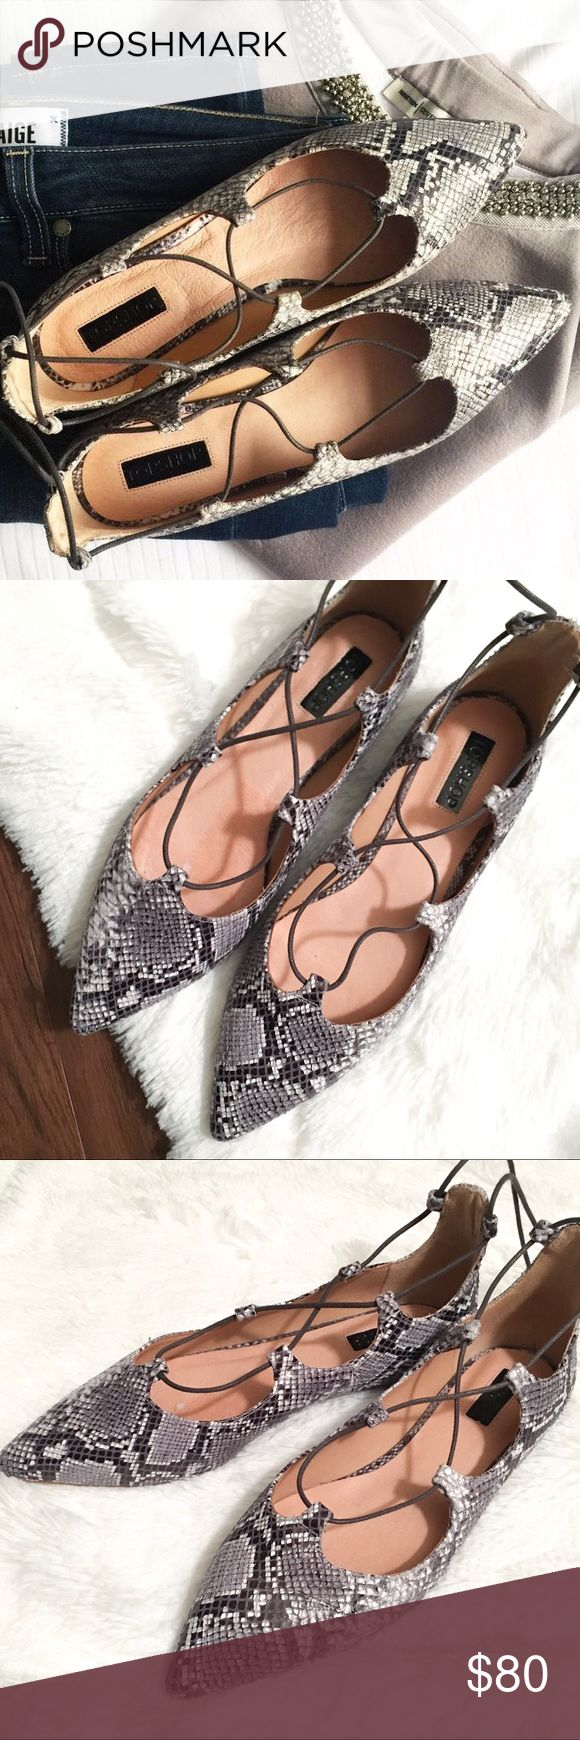 Topshop Lace Up Pointy Flats New with tags Topshop snake print lace up pointed flats - sold out online! Size is US 7.5 and is in perfect condition 😍 Topshop Shoes Flats & Loafers